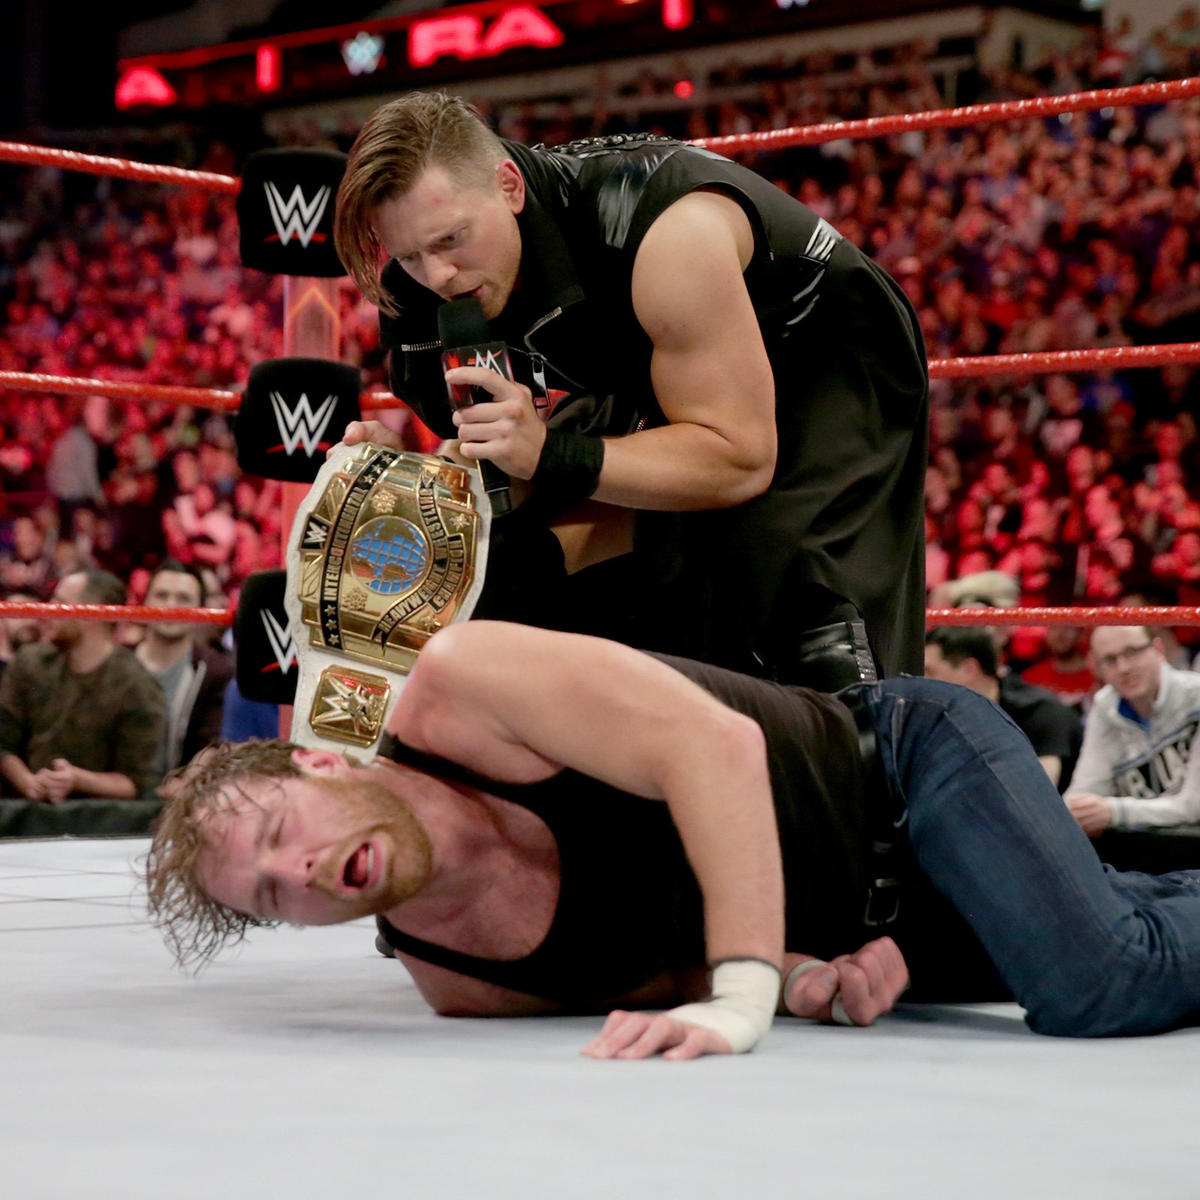 Miz vows to win the Intercontinental Championship back from Ambrose.